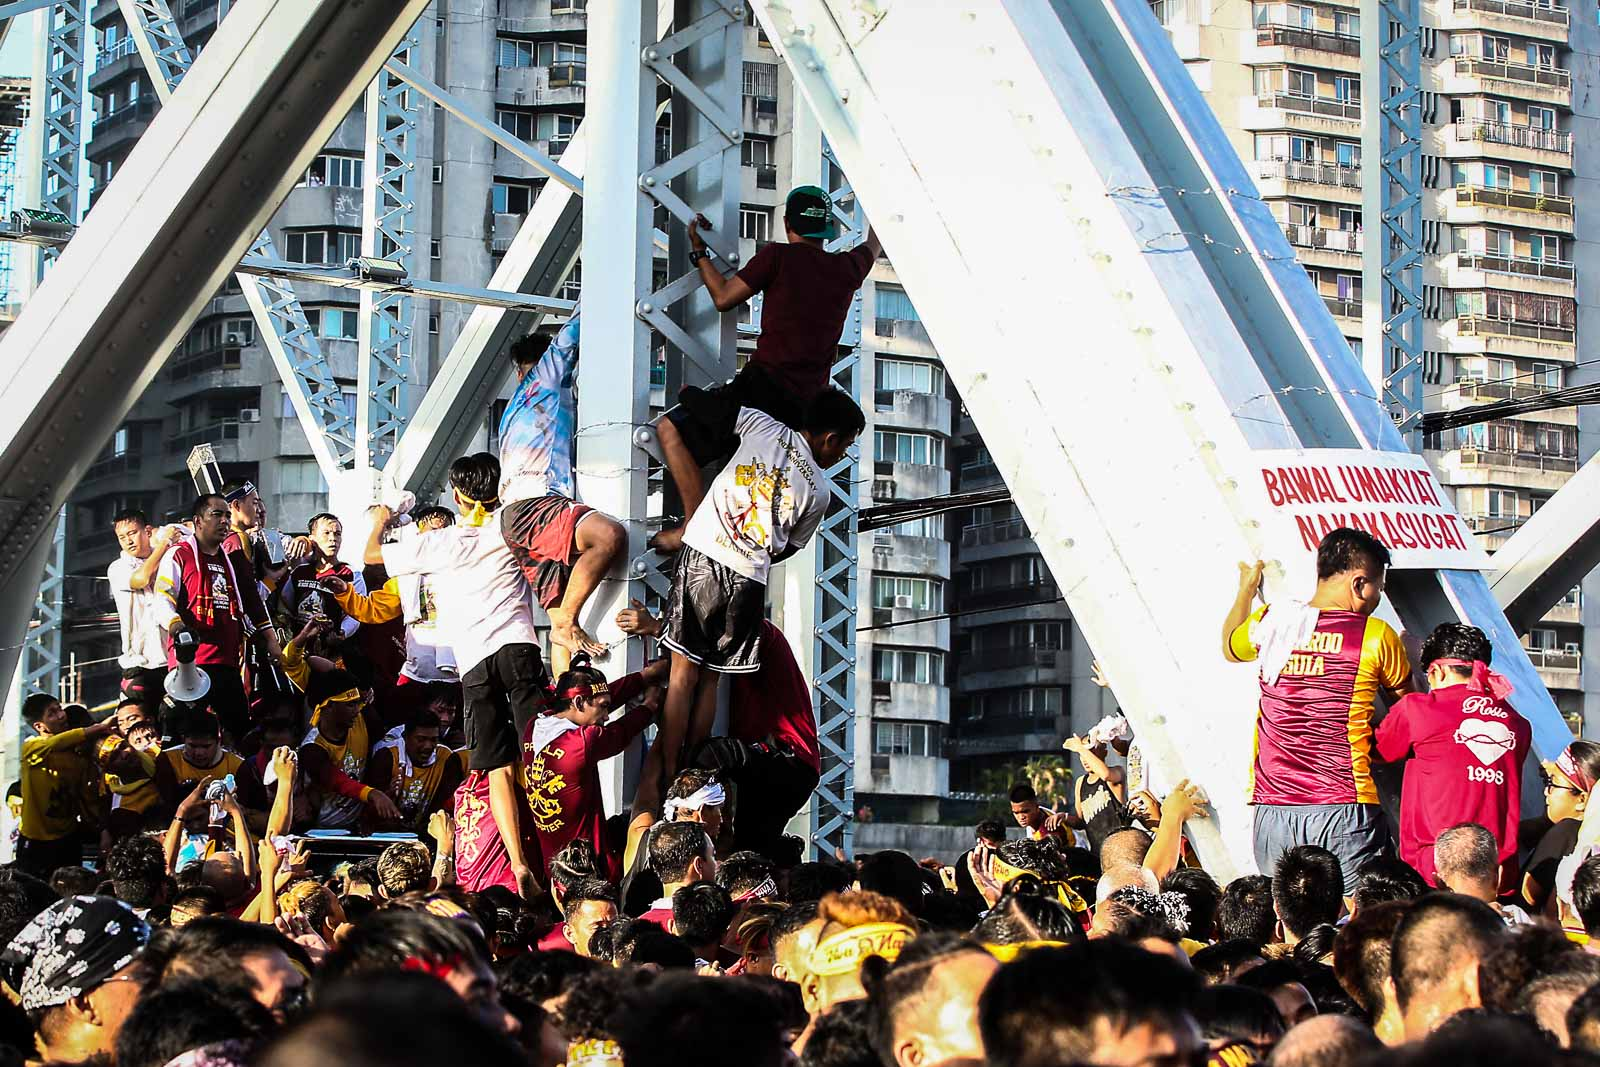 Devotees climb into the Ayala bridge to get a glimpse of the image of the Black Nazarene during the Traslacion on January 9, 2020. Photo by Ben Nabong/Rappler